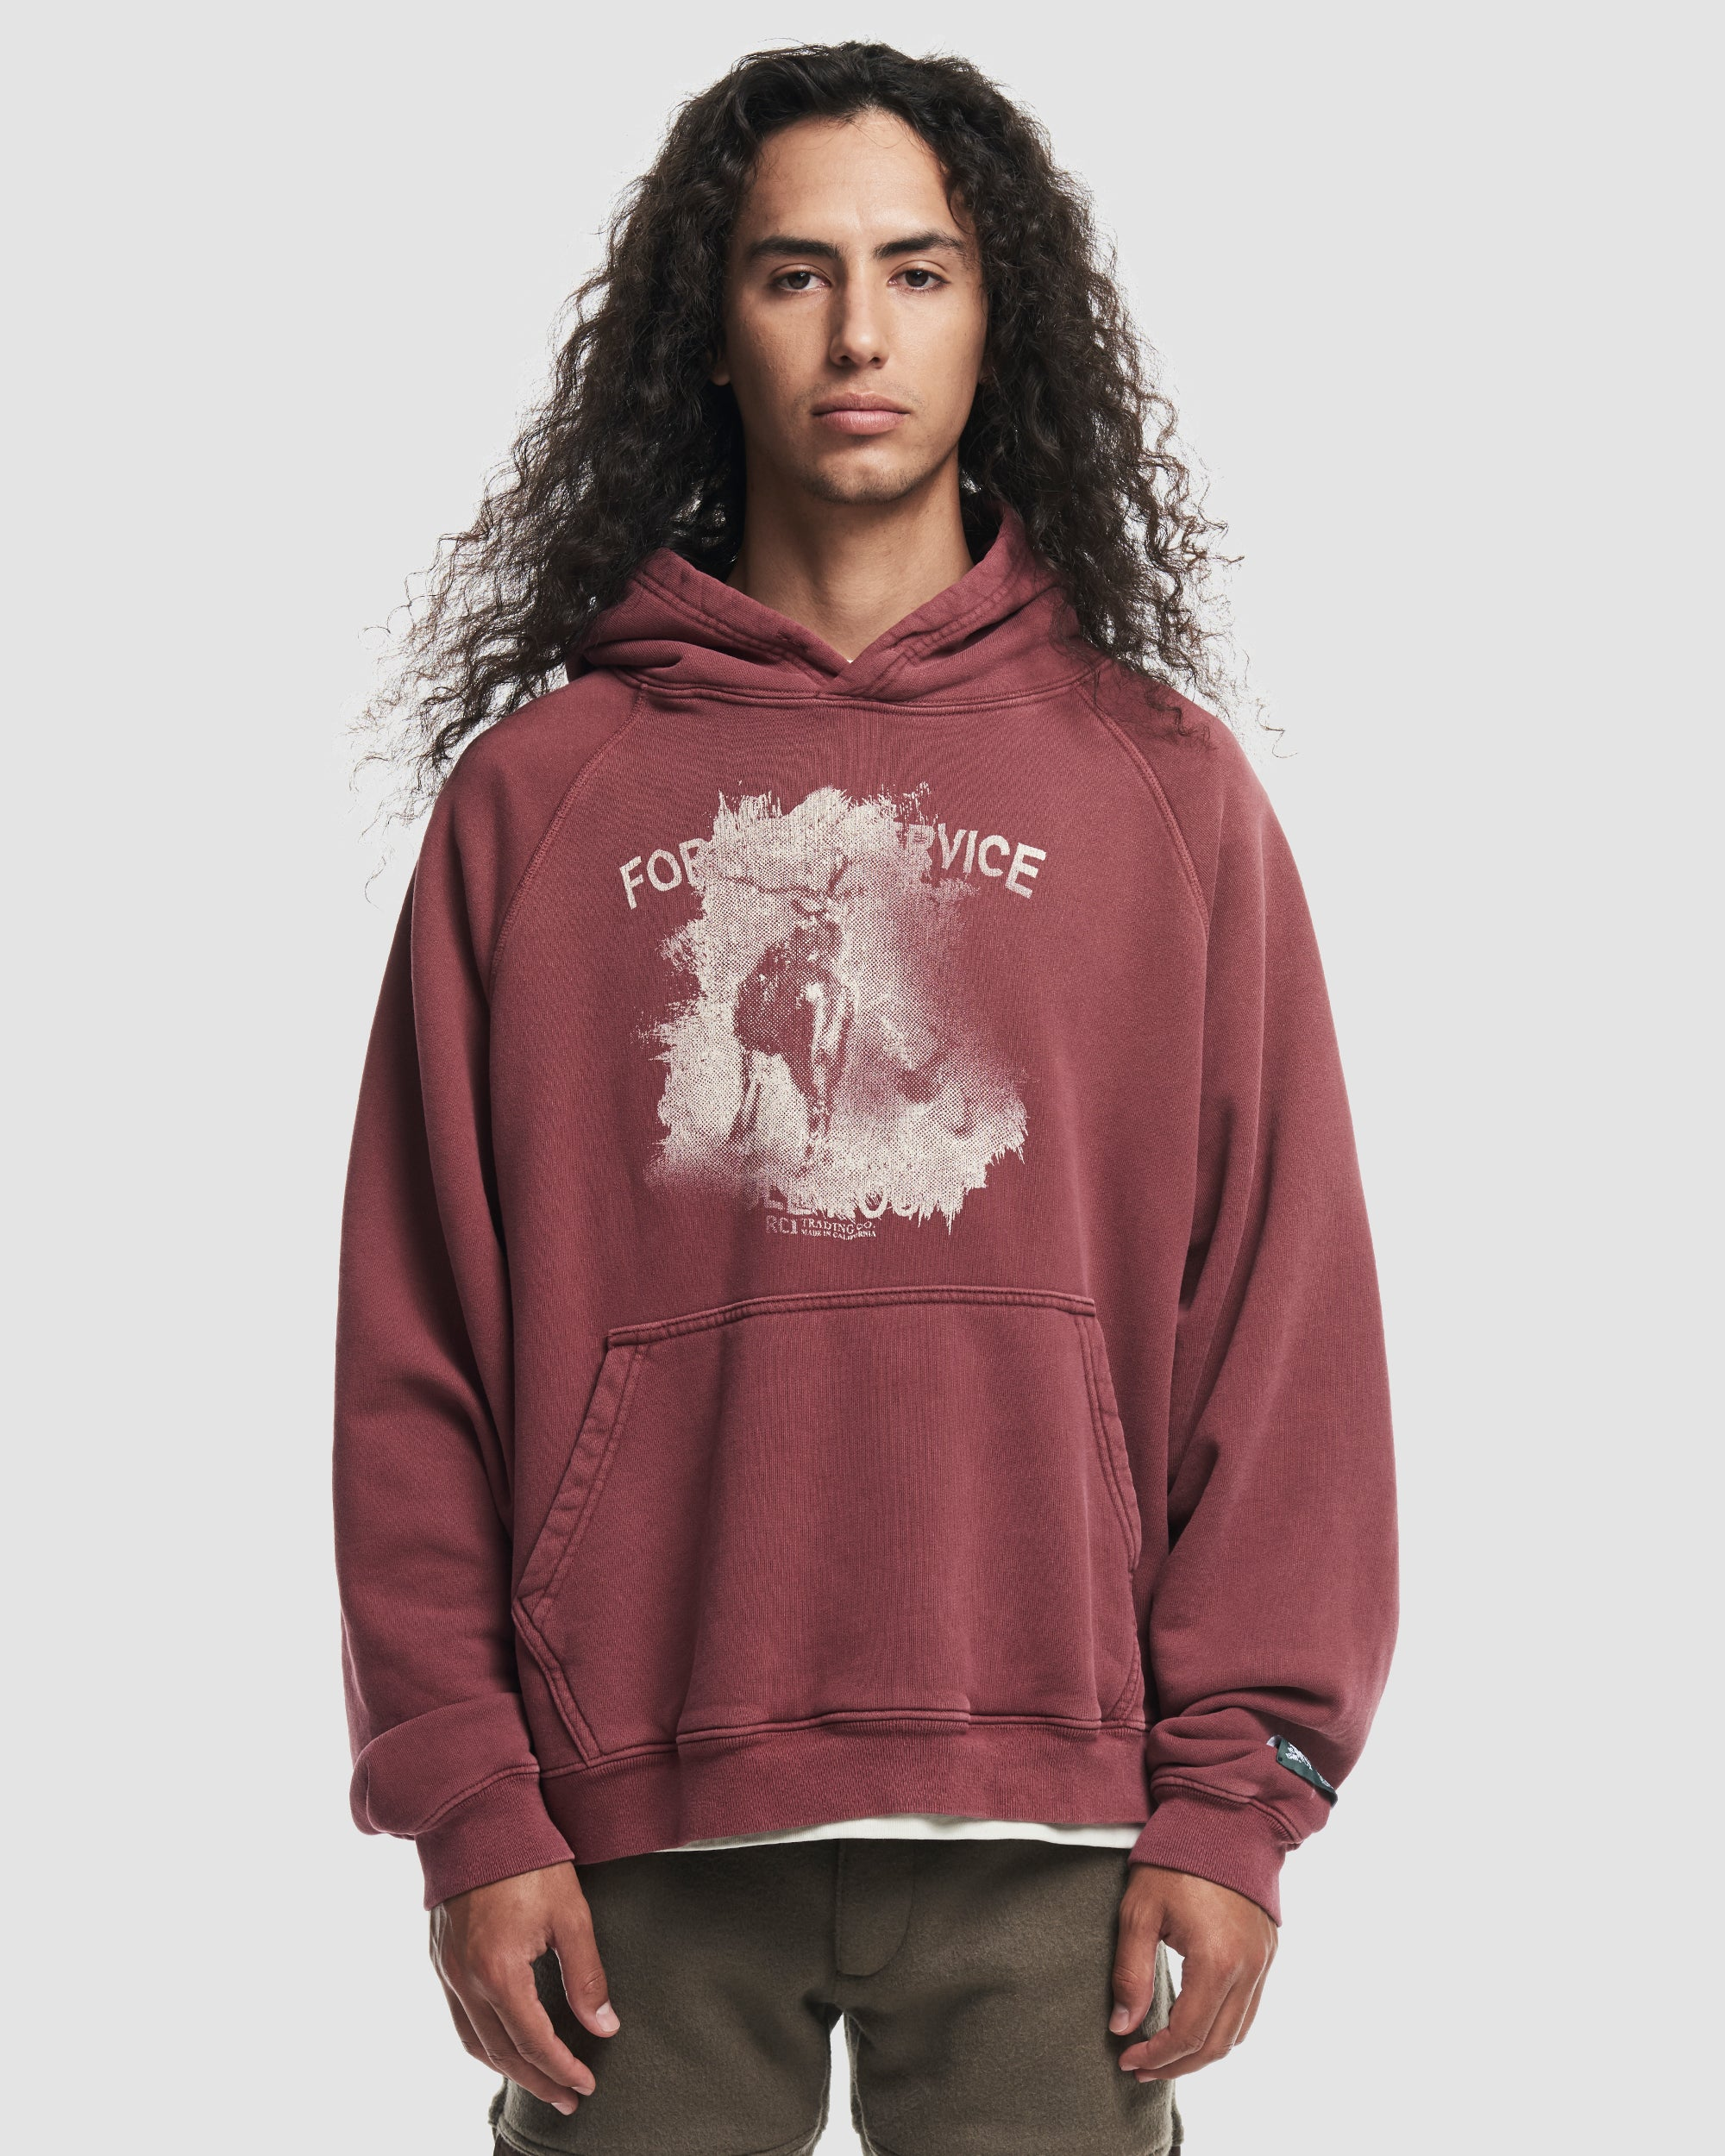 Forest Service Hooded Sweatshirt in Red